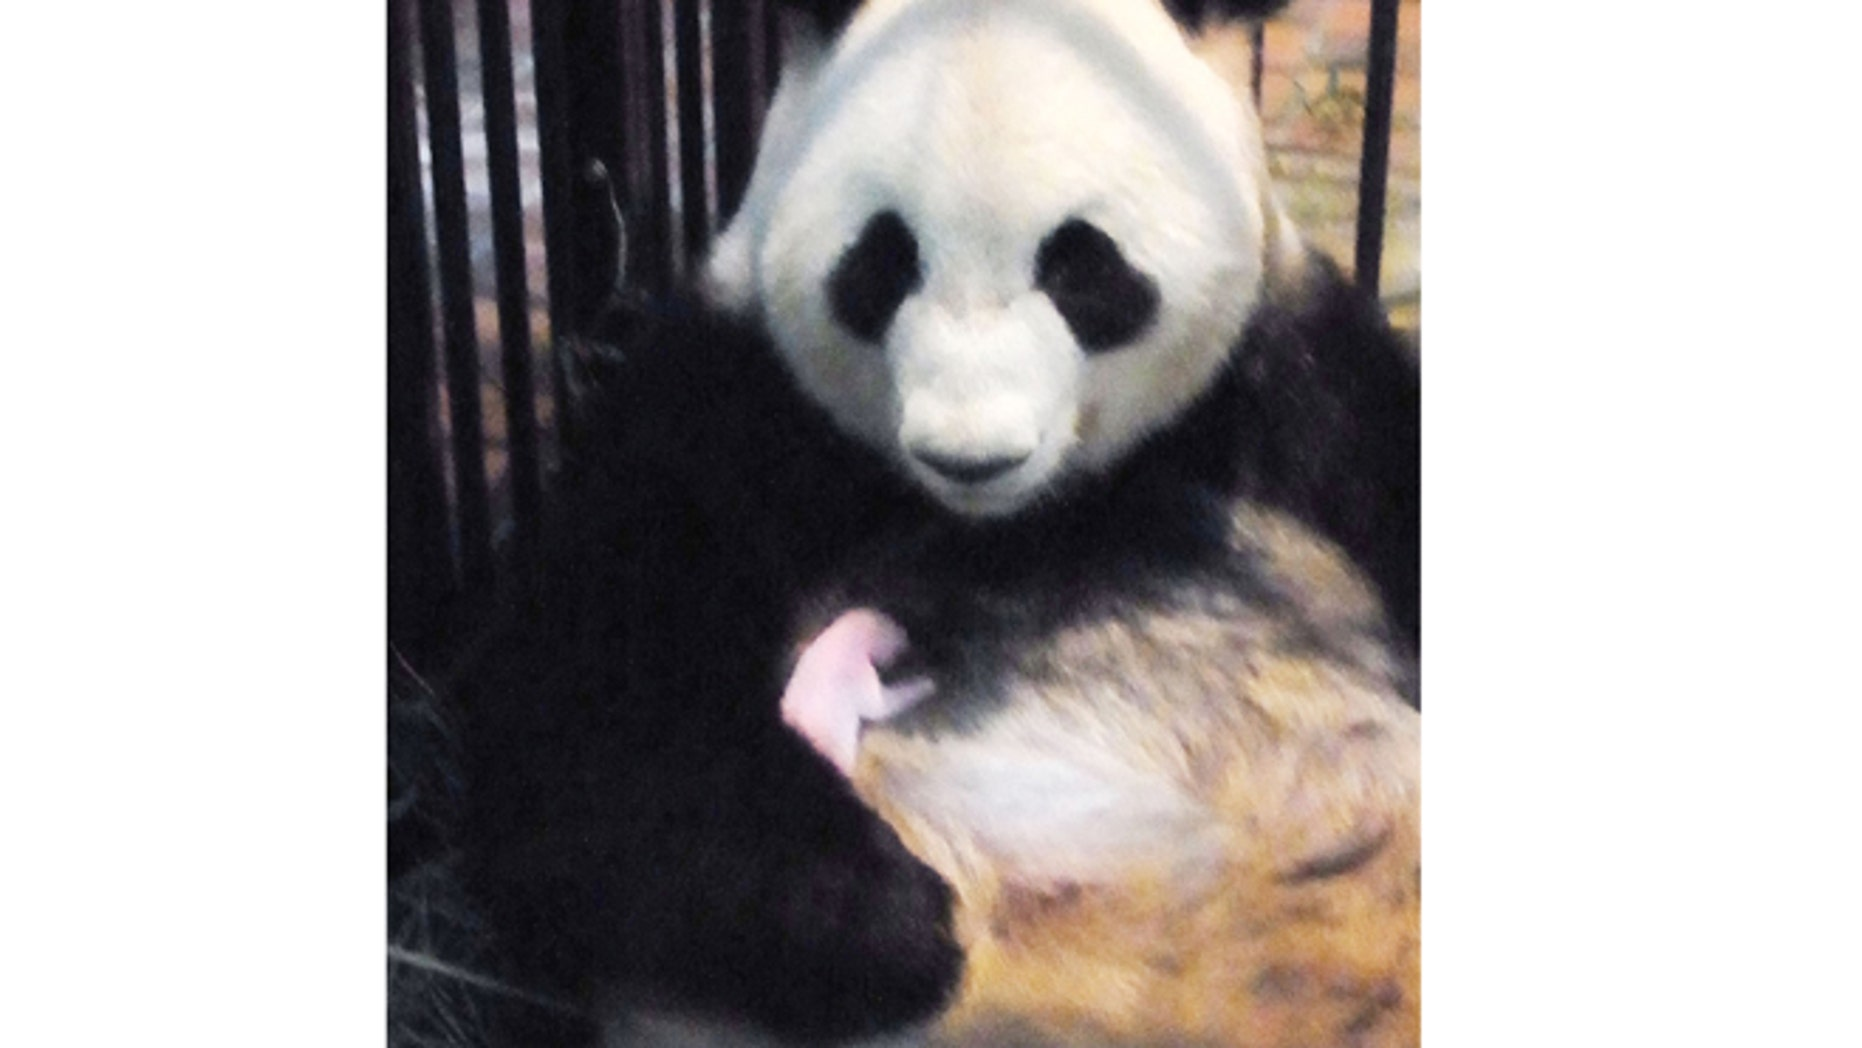 In this Friday, July 6, 2012 photo released by the Ueno Zoological Park Society, Shin Shin, a 7-year-old giant panda, cuddles her newly born male giant panda in their cage at Ueno Zoo in Tokyo. The panda baby, who was born Thursday, July 5, 2012, died of pneumonia at the zoo on Wednesday, July 11, less than a week after becoming the first panda to be born at the facility in 24 years.